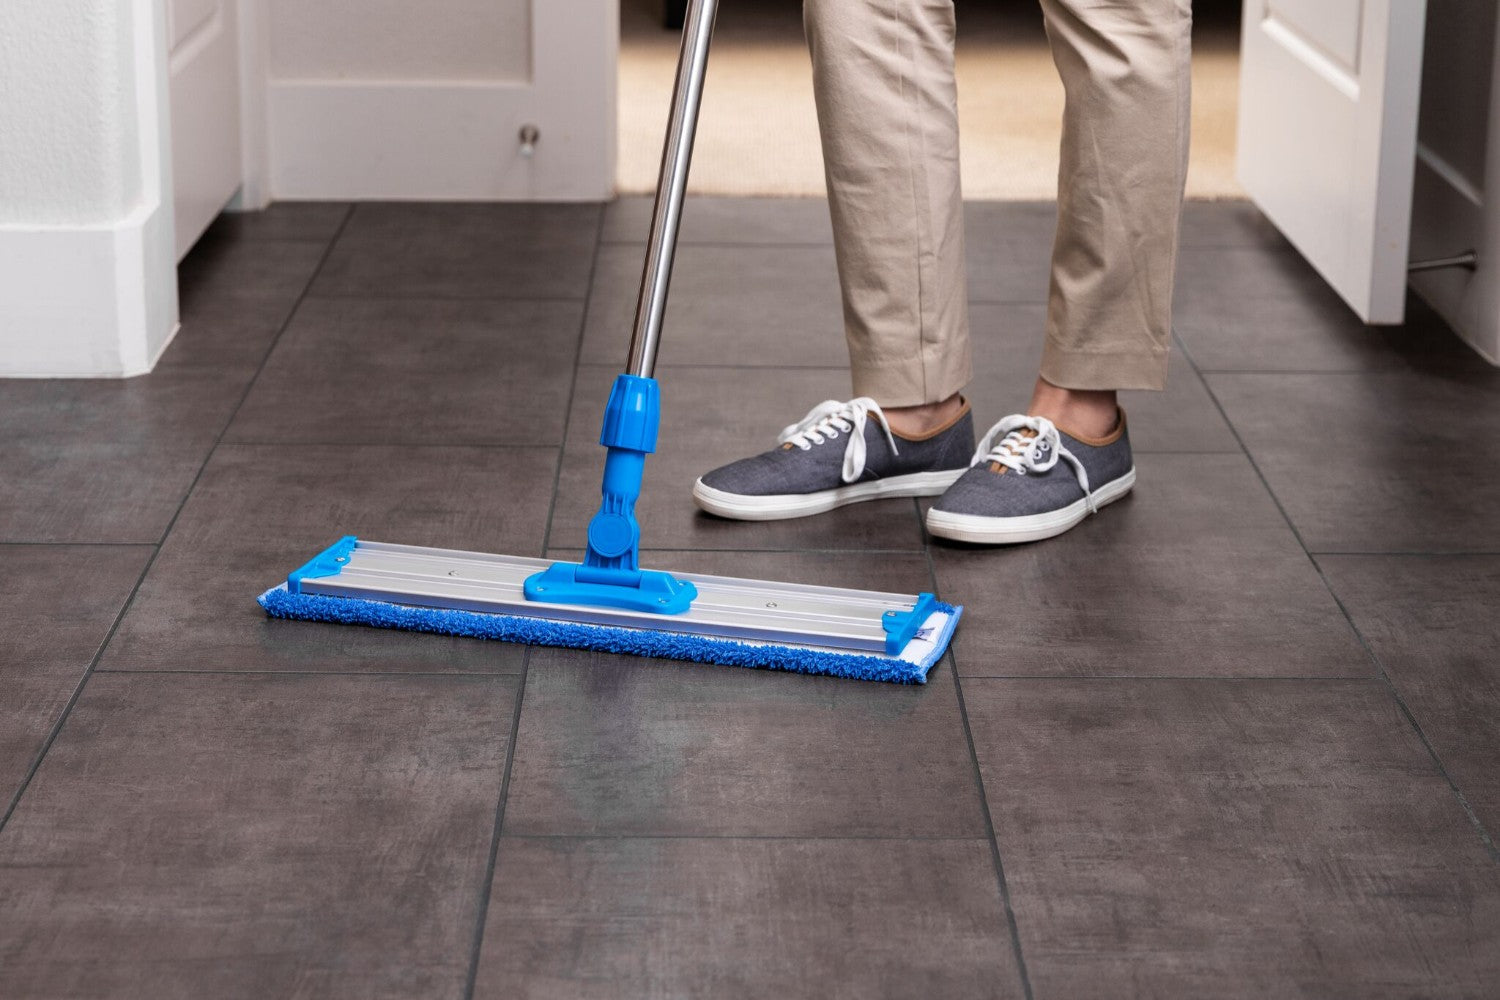 PMWM20-20 inch premium microfiber wet mop pads for tile floors